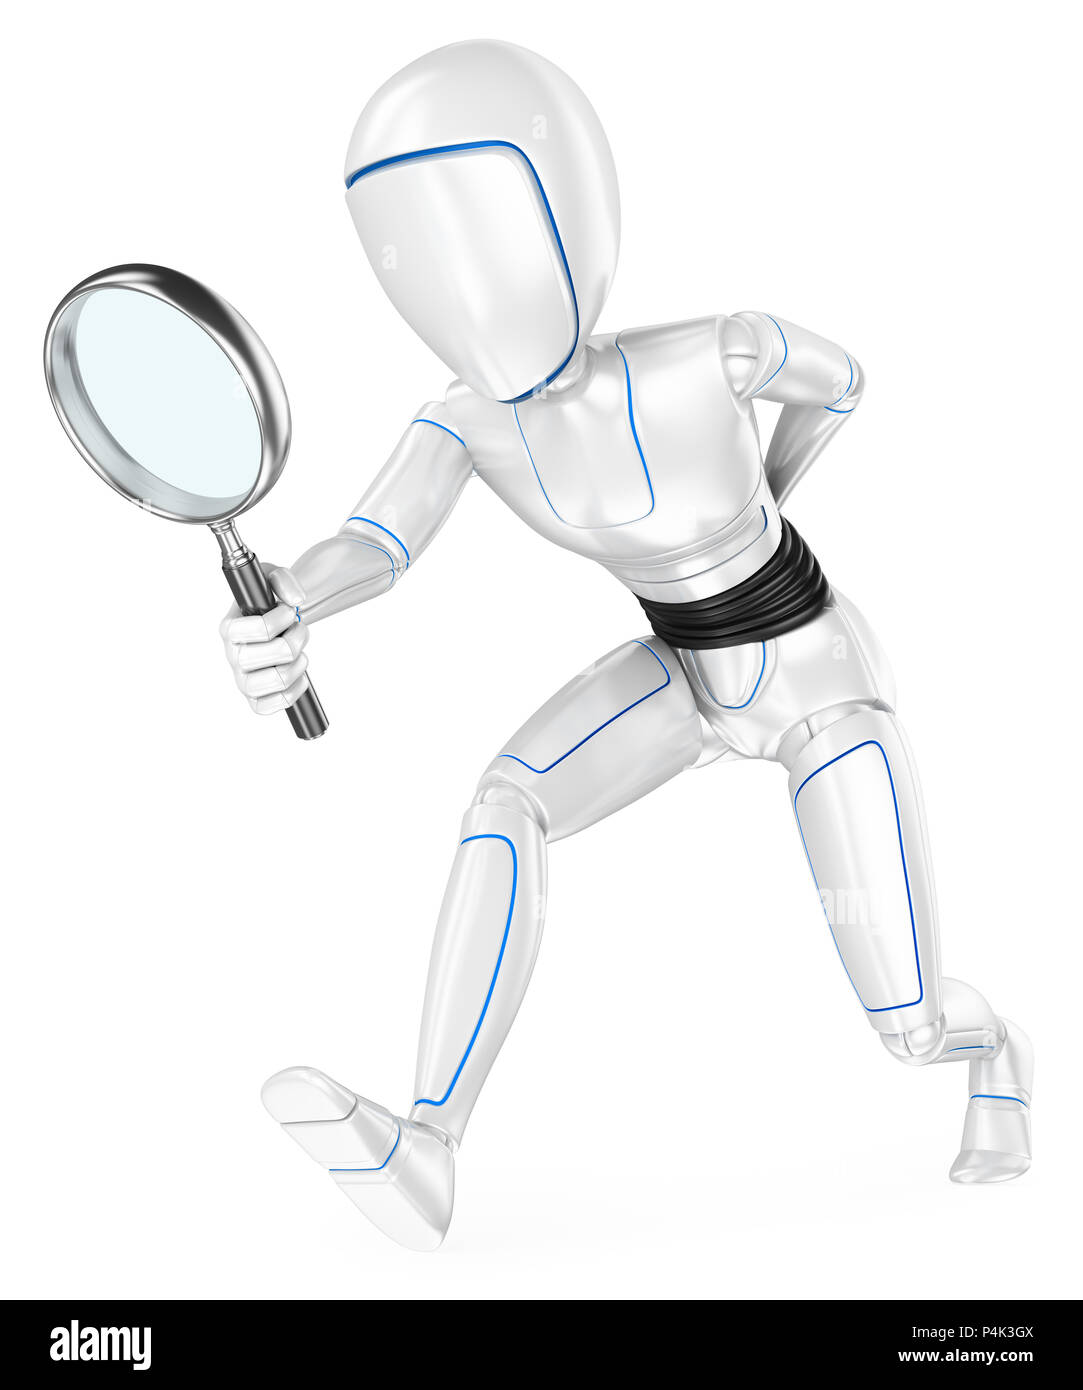 3d futuristic android illustration. Humanoid robot looking for with a magnifying glass. Isolated white background. - Stock Image